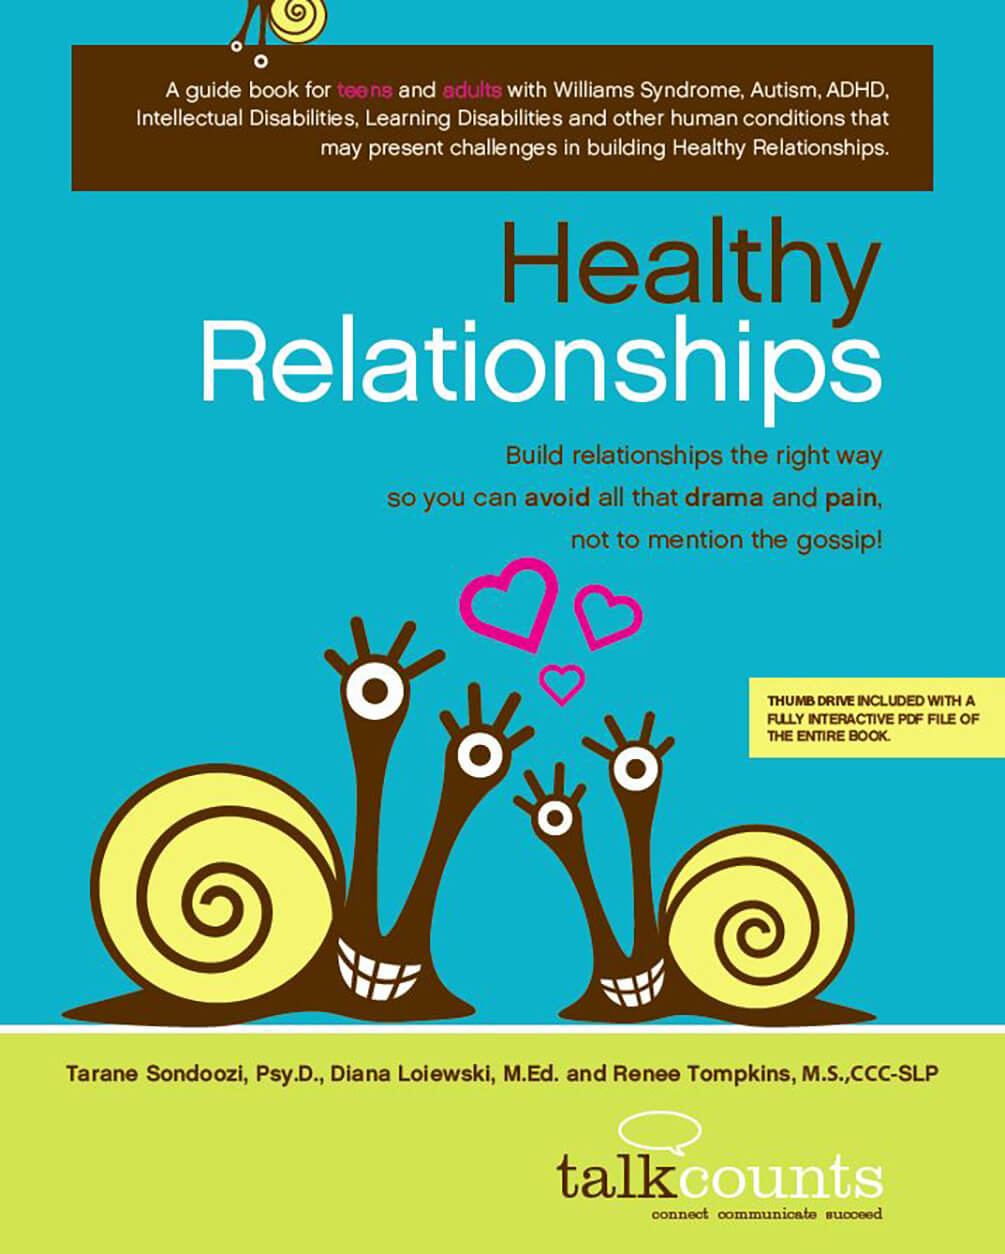 Socialthinking Healthy Relationships